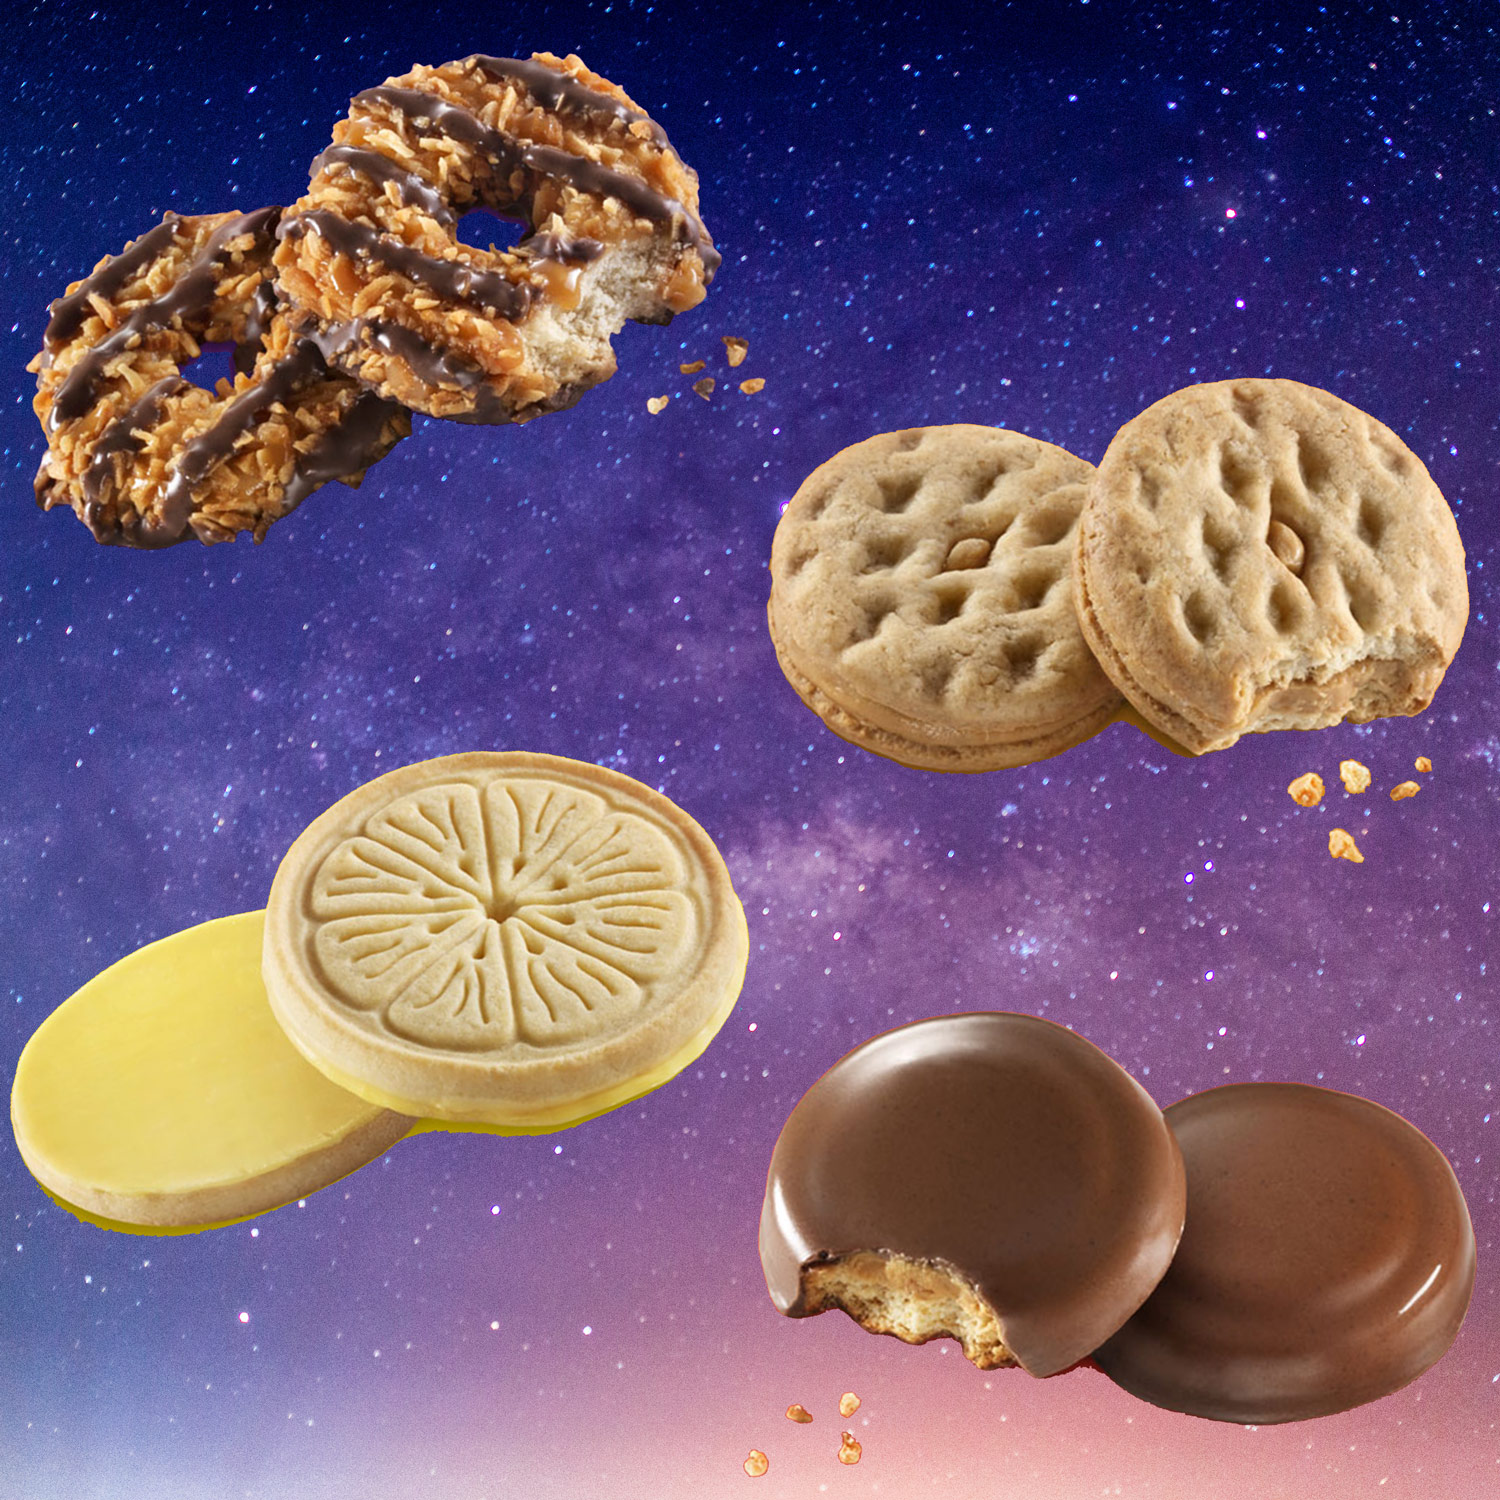 different girl scout cookies against a starry sky background